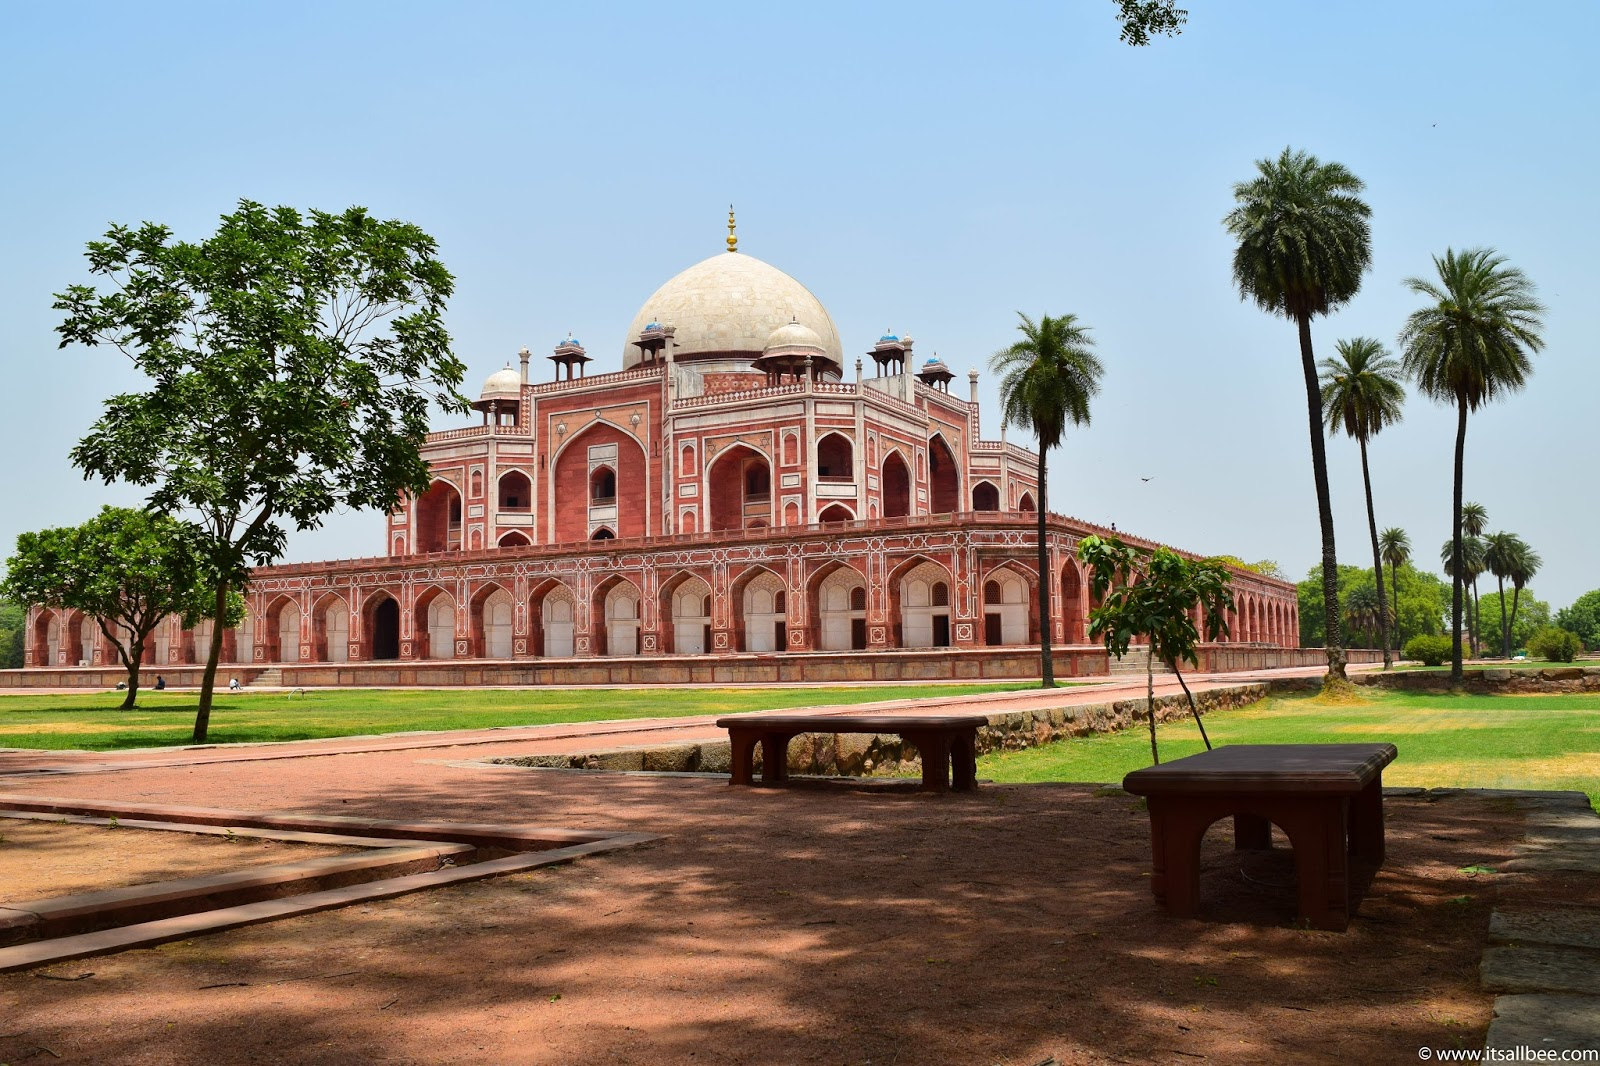 The Best Delhi Itinerary For 3 Days - Sightseeing Tour Of The Indian Capital | ItsAllBee